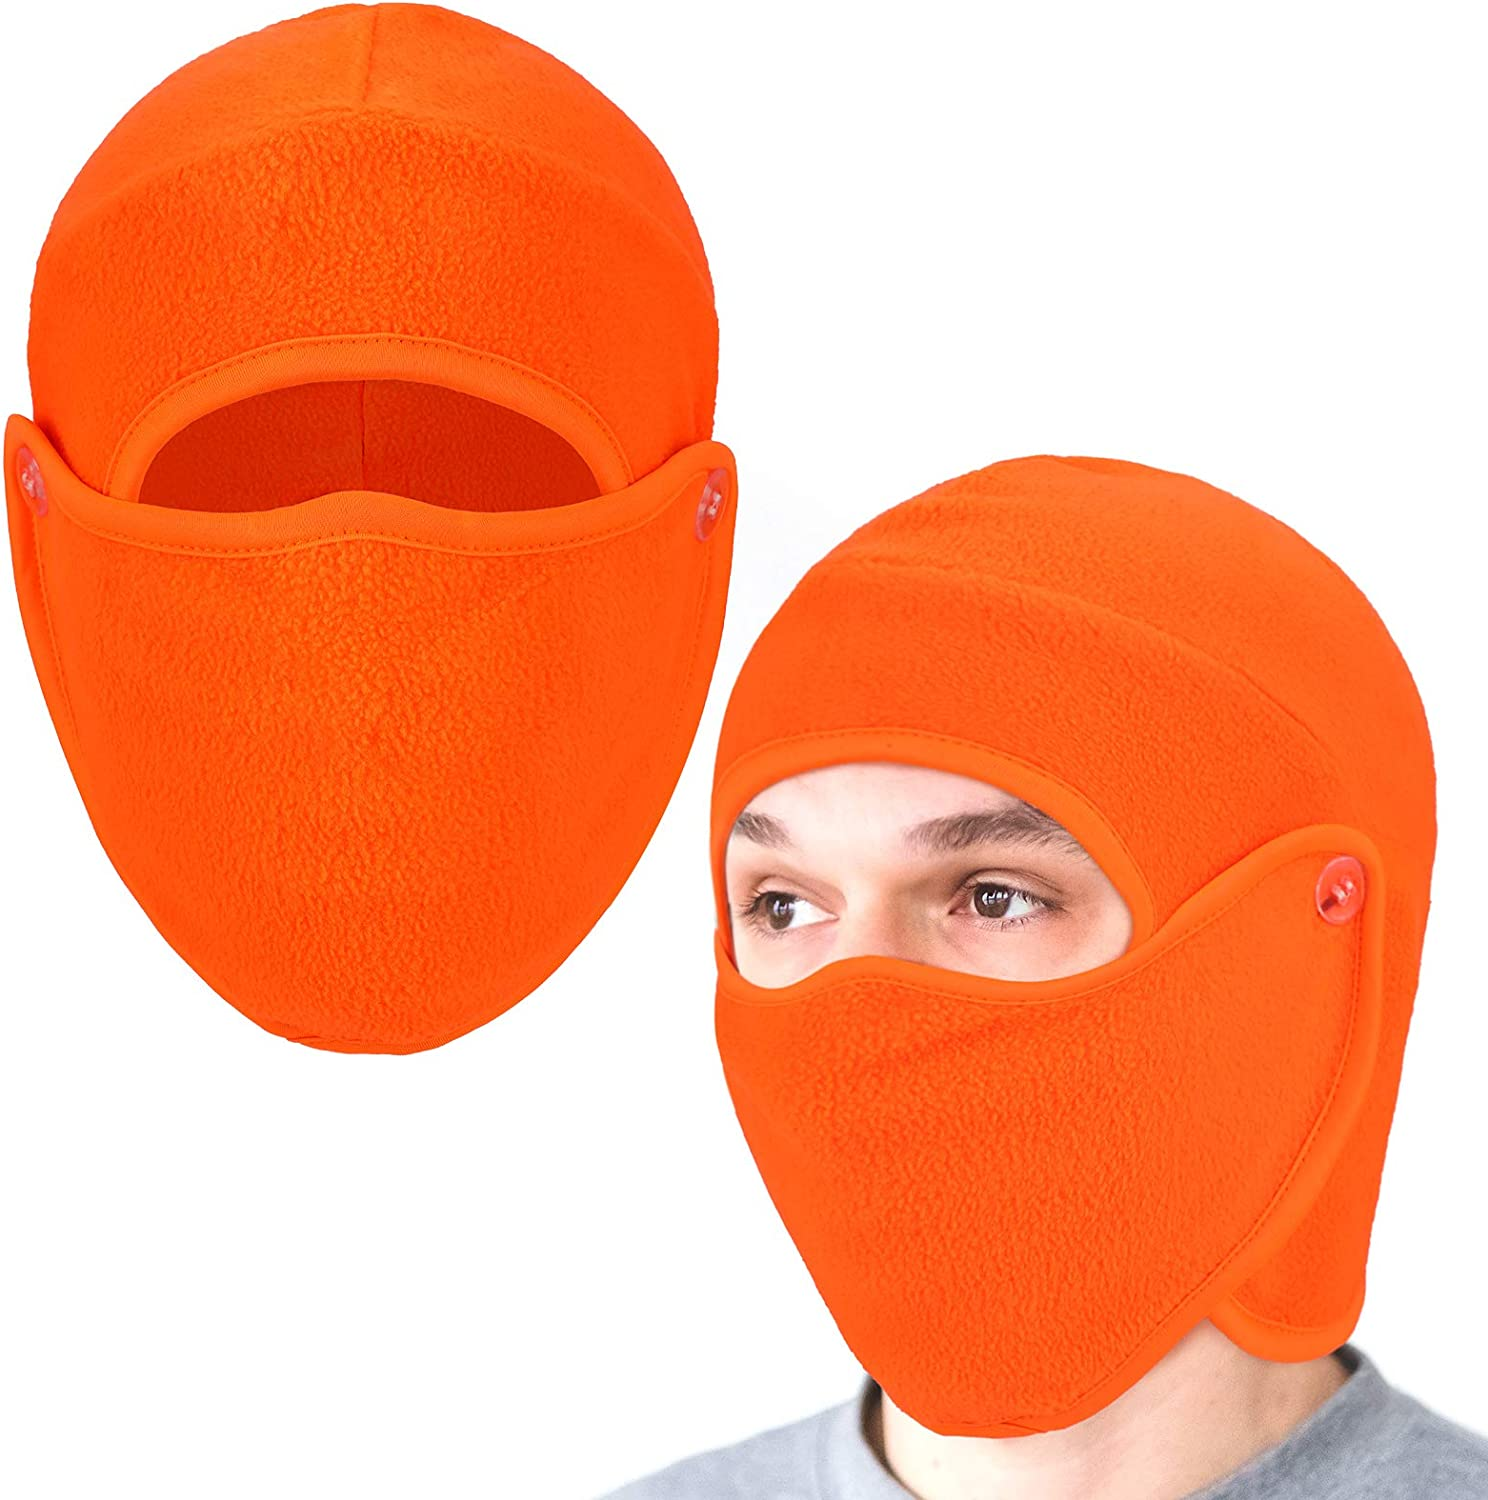 Geyoga 2 Pieces 2 in 1 Men's Hat Balaclava with Face Covering Warm Winter Cold Weather Headgear for Men Women (Fluorescent Orange) at  Women's Clothing store